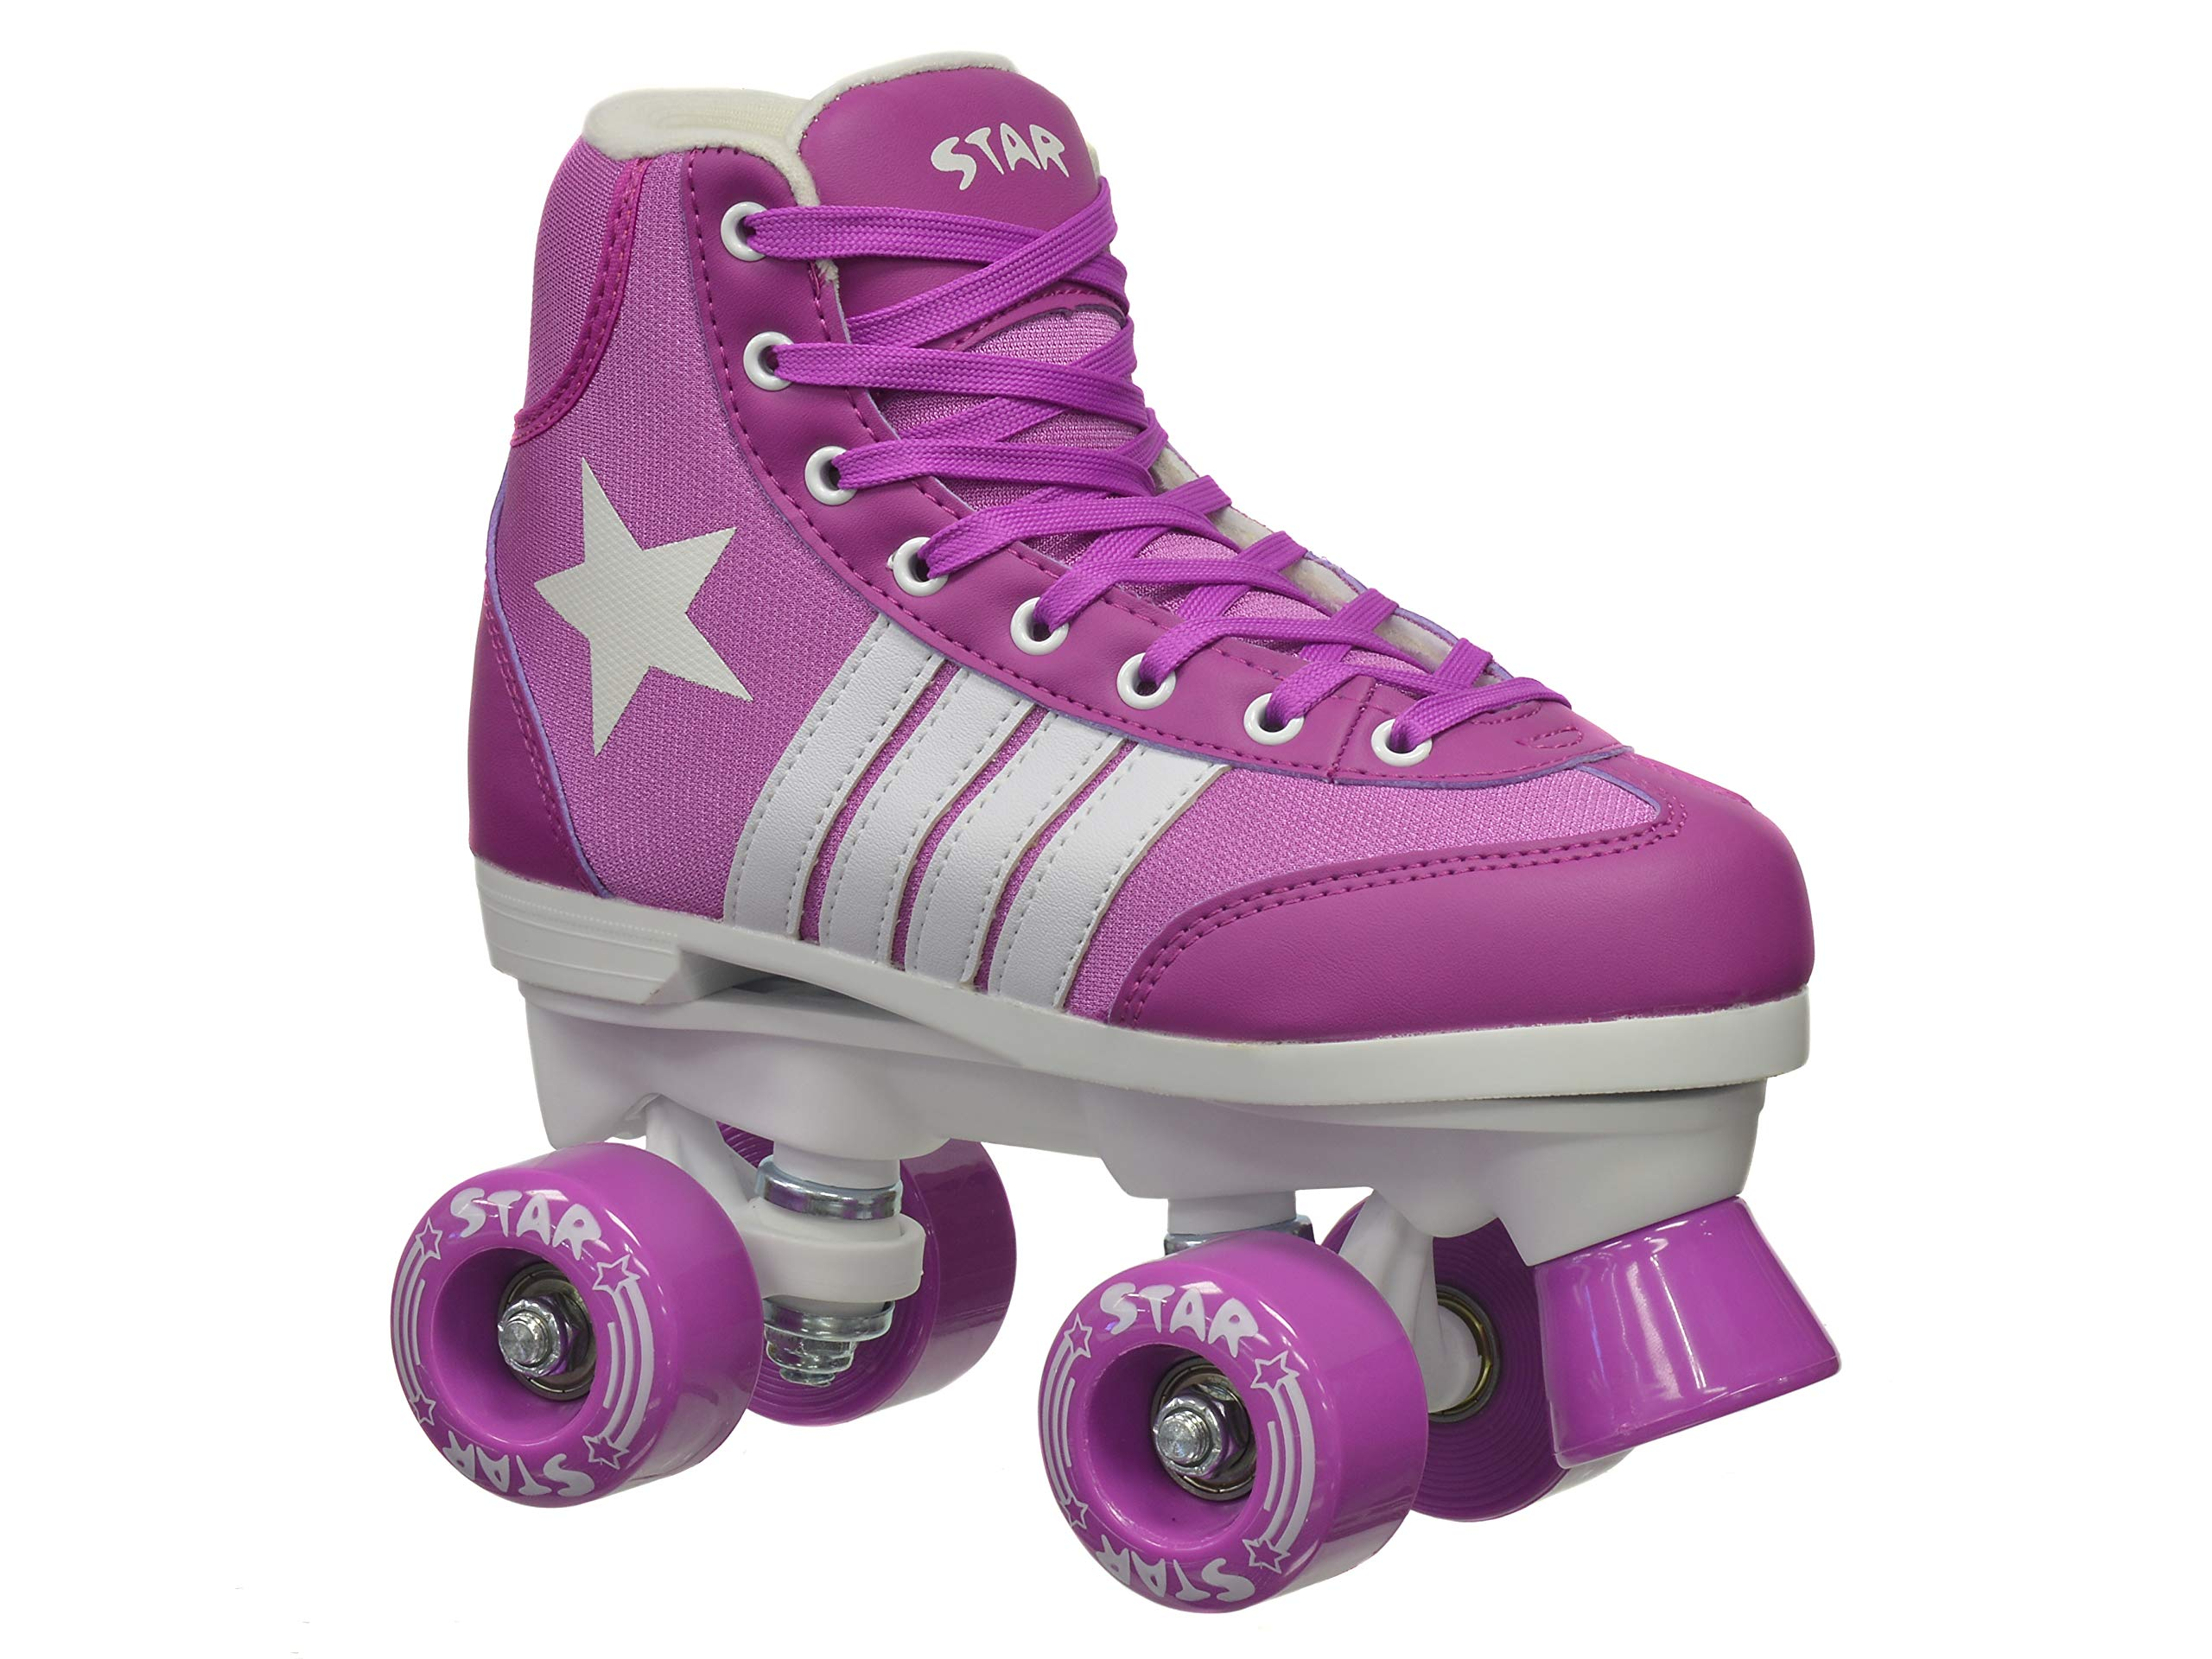 New! Epic Star Pegasus Indoor Outdoor Classic High-Top Quad Roller Skates w/ 2 Pair of Laces (Purple & White) (Adult 6)